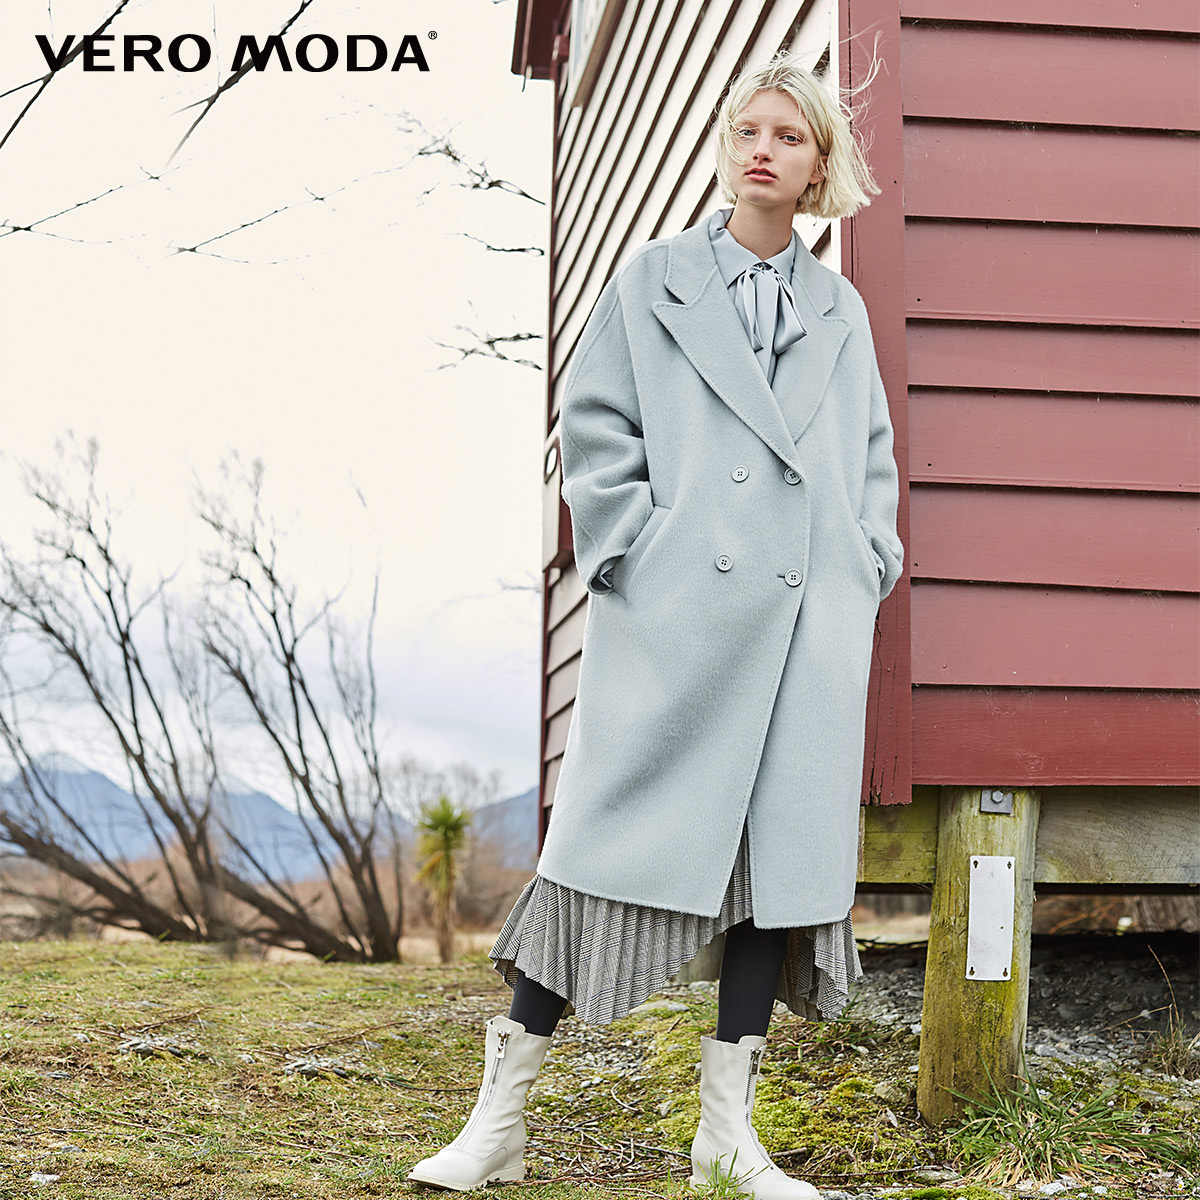 Vero Moda 2019 New Women's 91% Wool Double-faced Lapel Winter Woolen Coat | 318427515